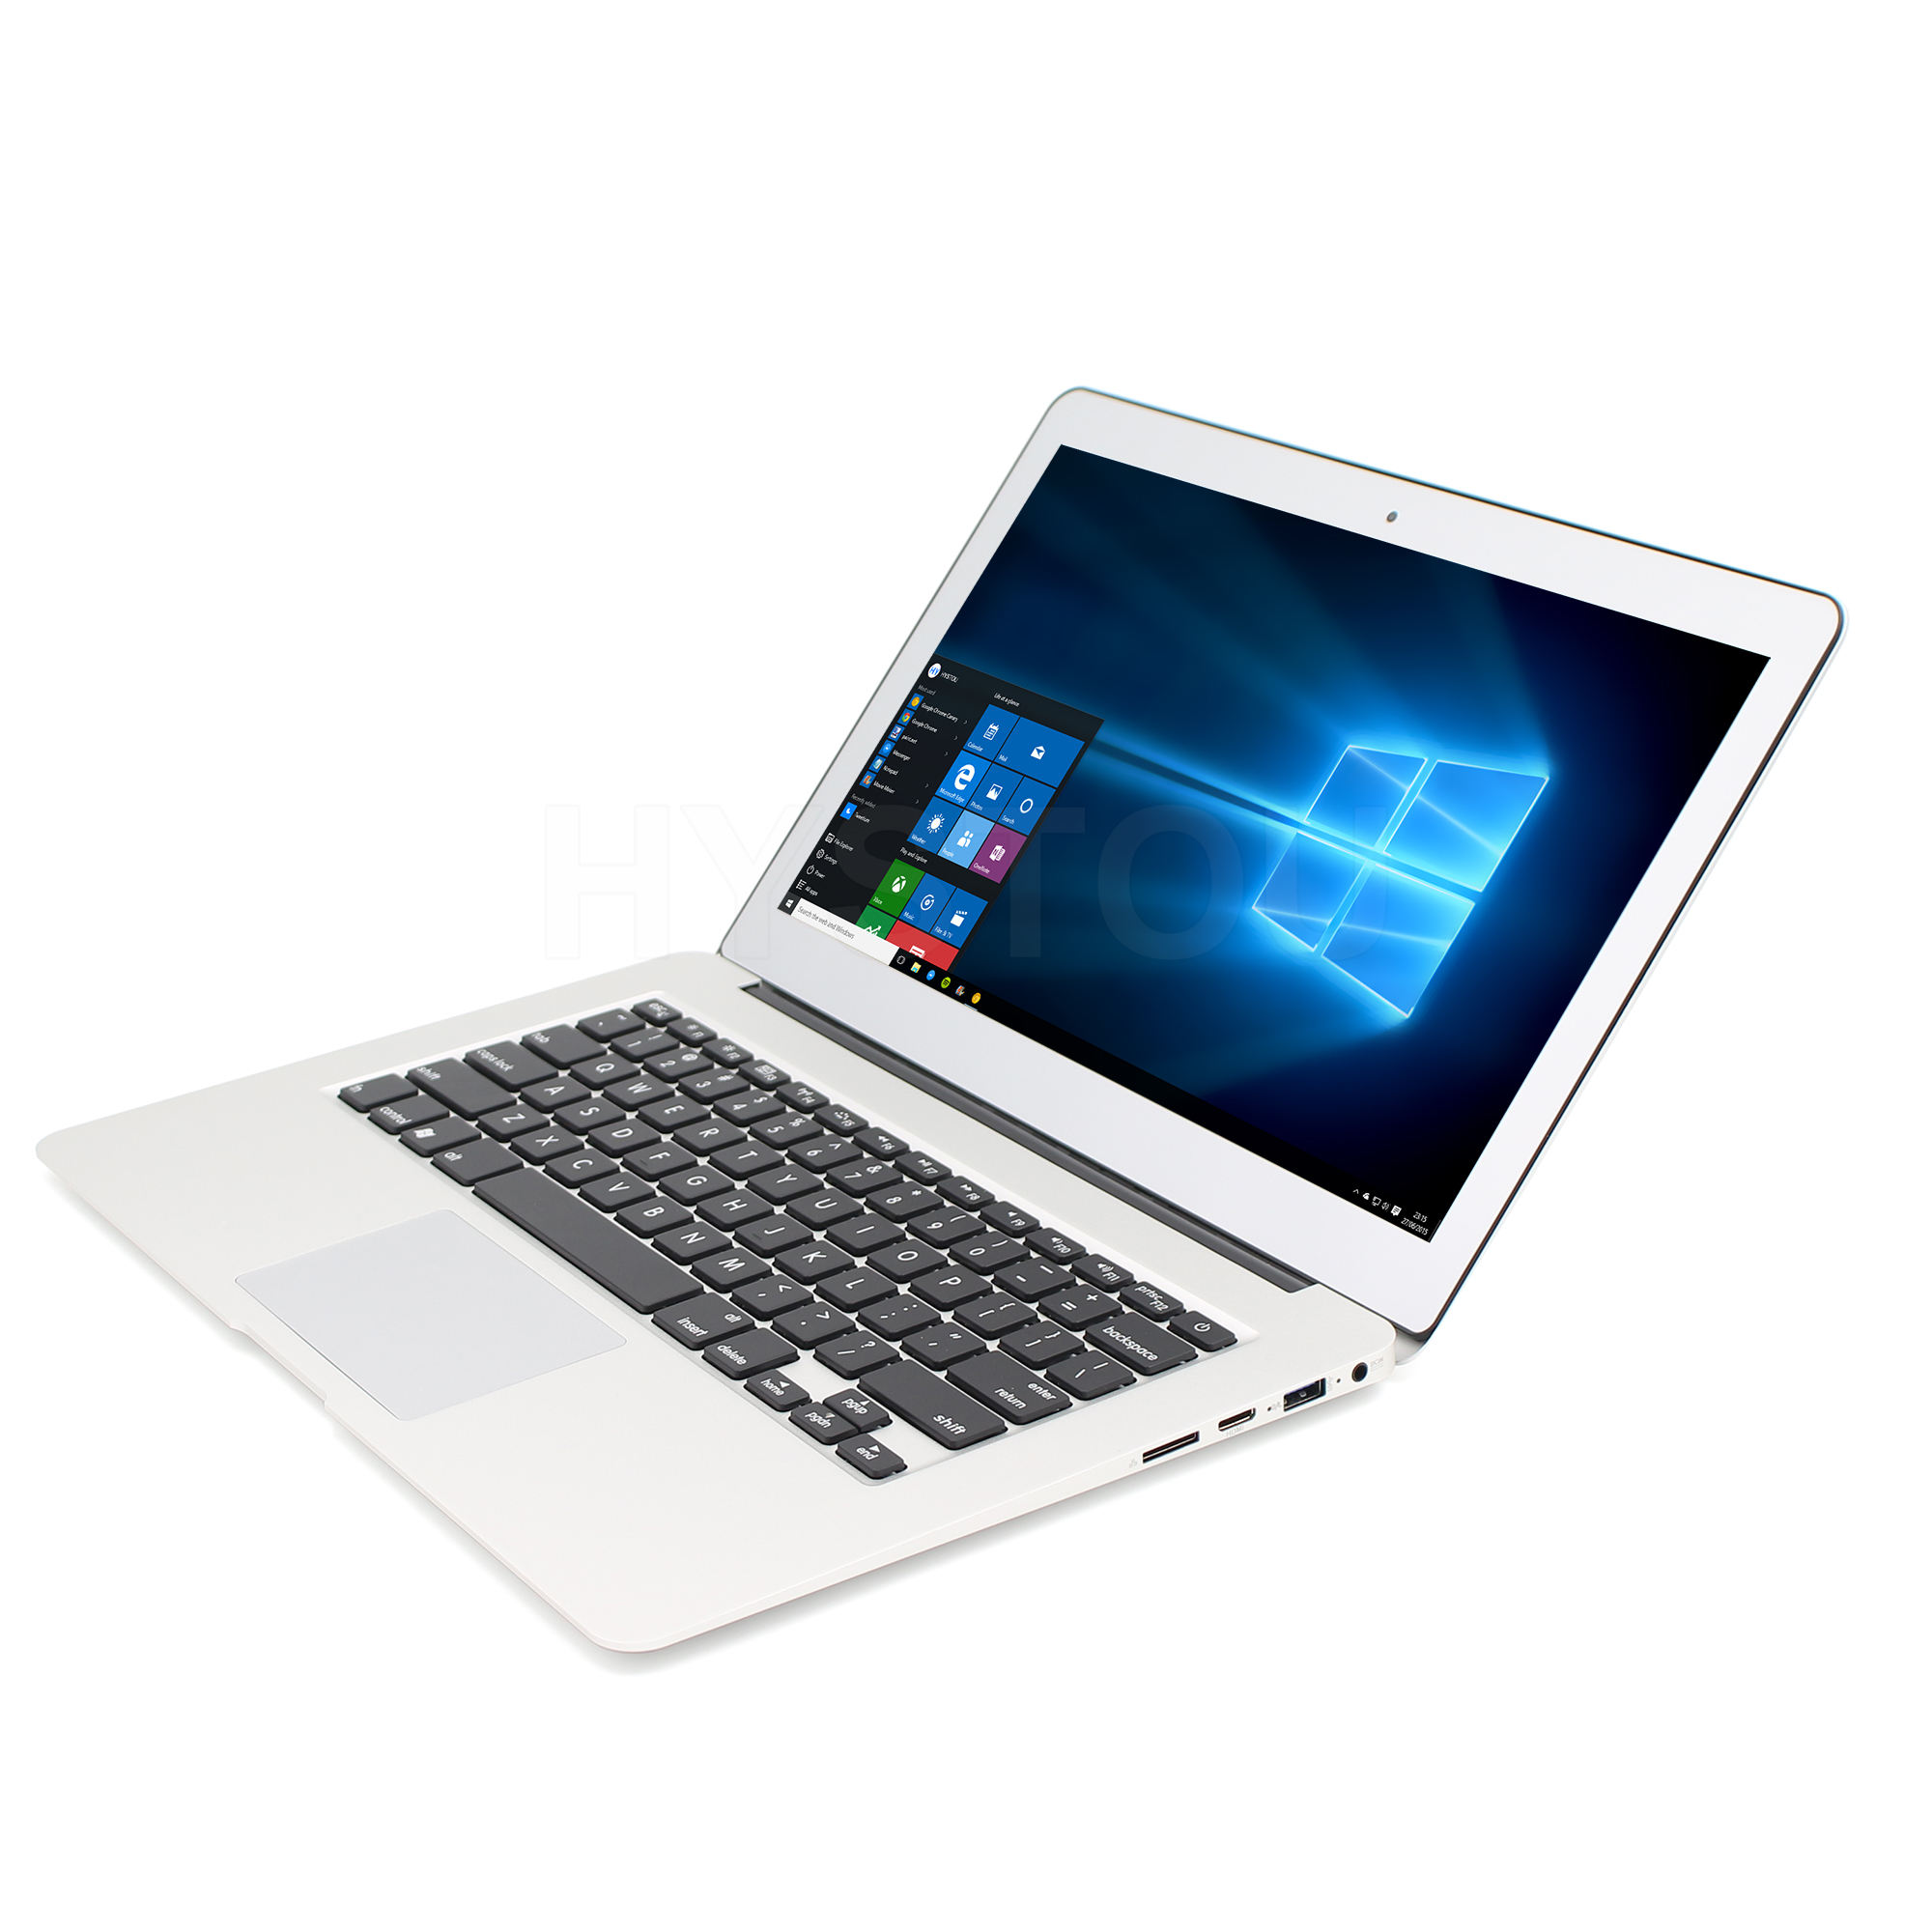 Hystou Notebook Intel I5 5200u Laptop With 4g Ram 128g Ssd Hasee